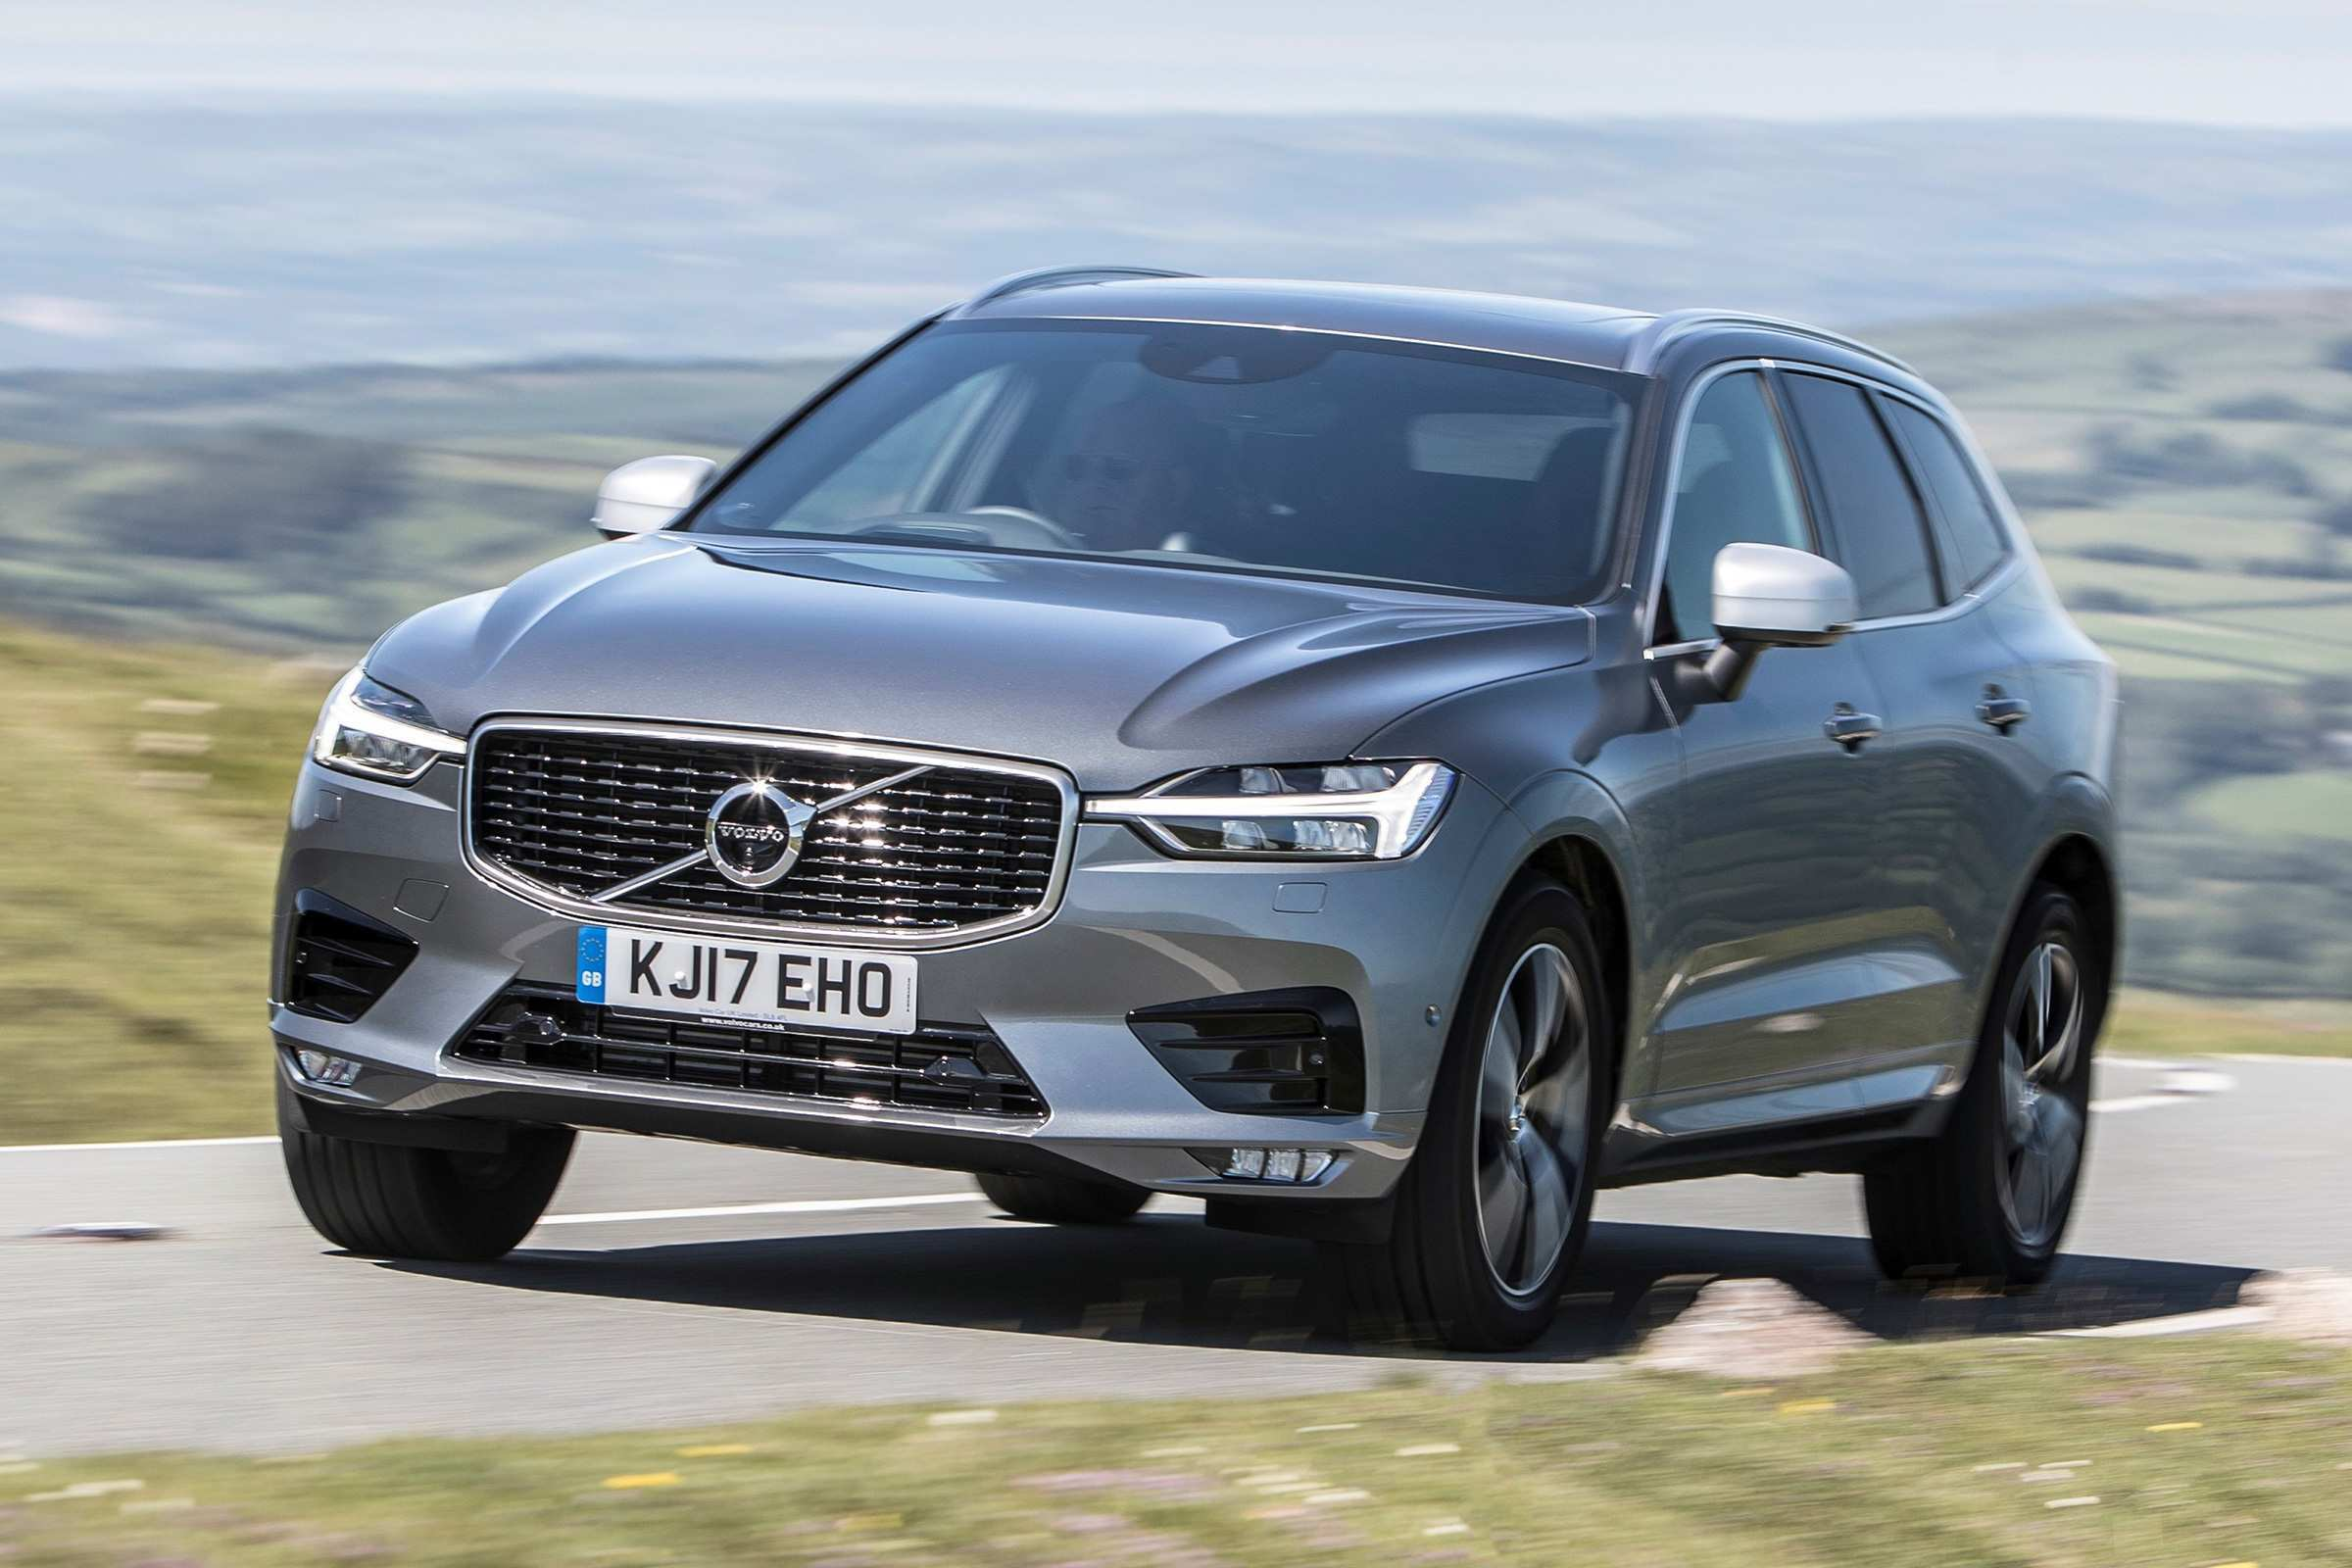 98 Concept of New Volvo Xc60 2019 Manual Specs Spesification for New Volvo Xc60 2019 Manual Specs